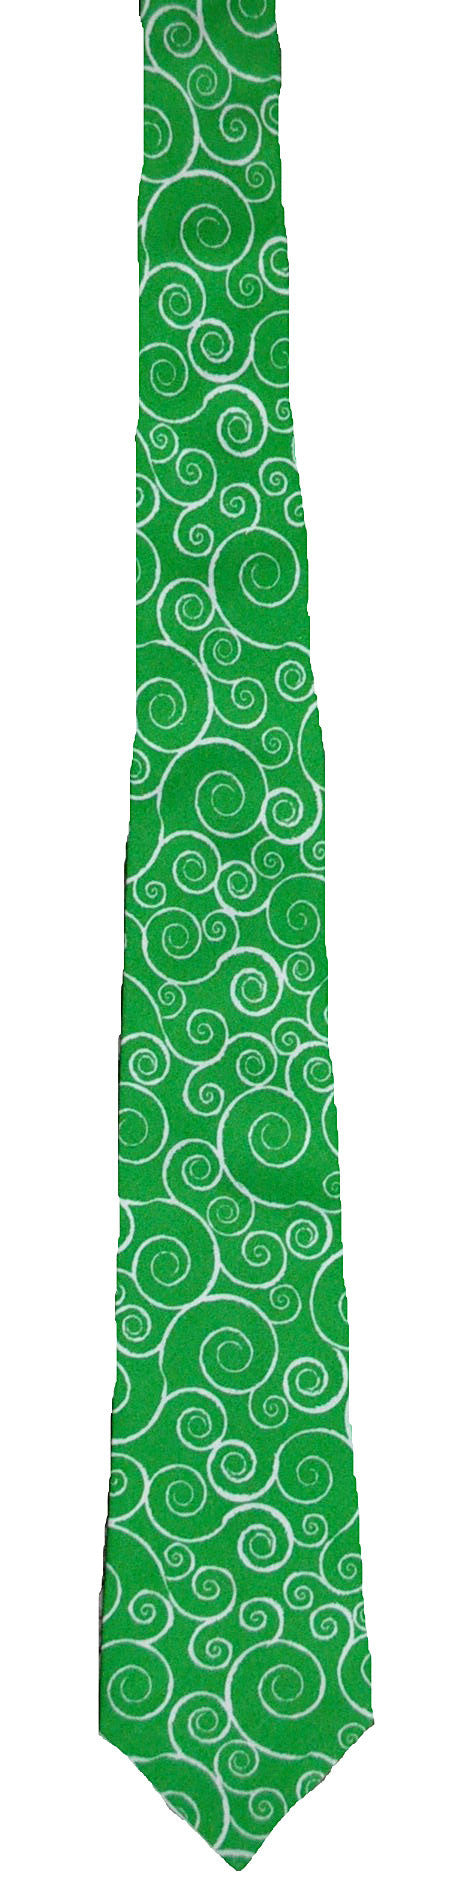 Green with White Swirls - Handmade Men's Necktie